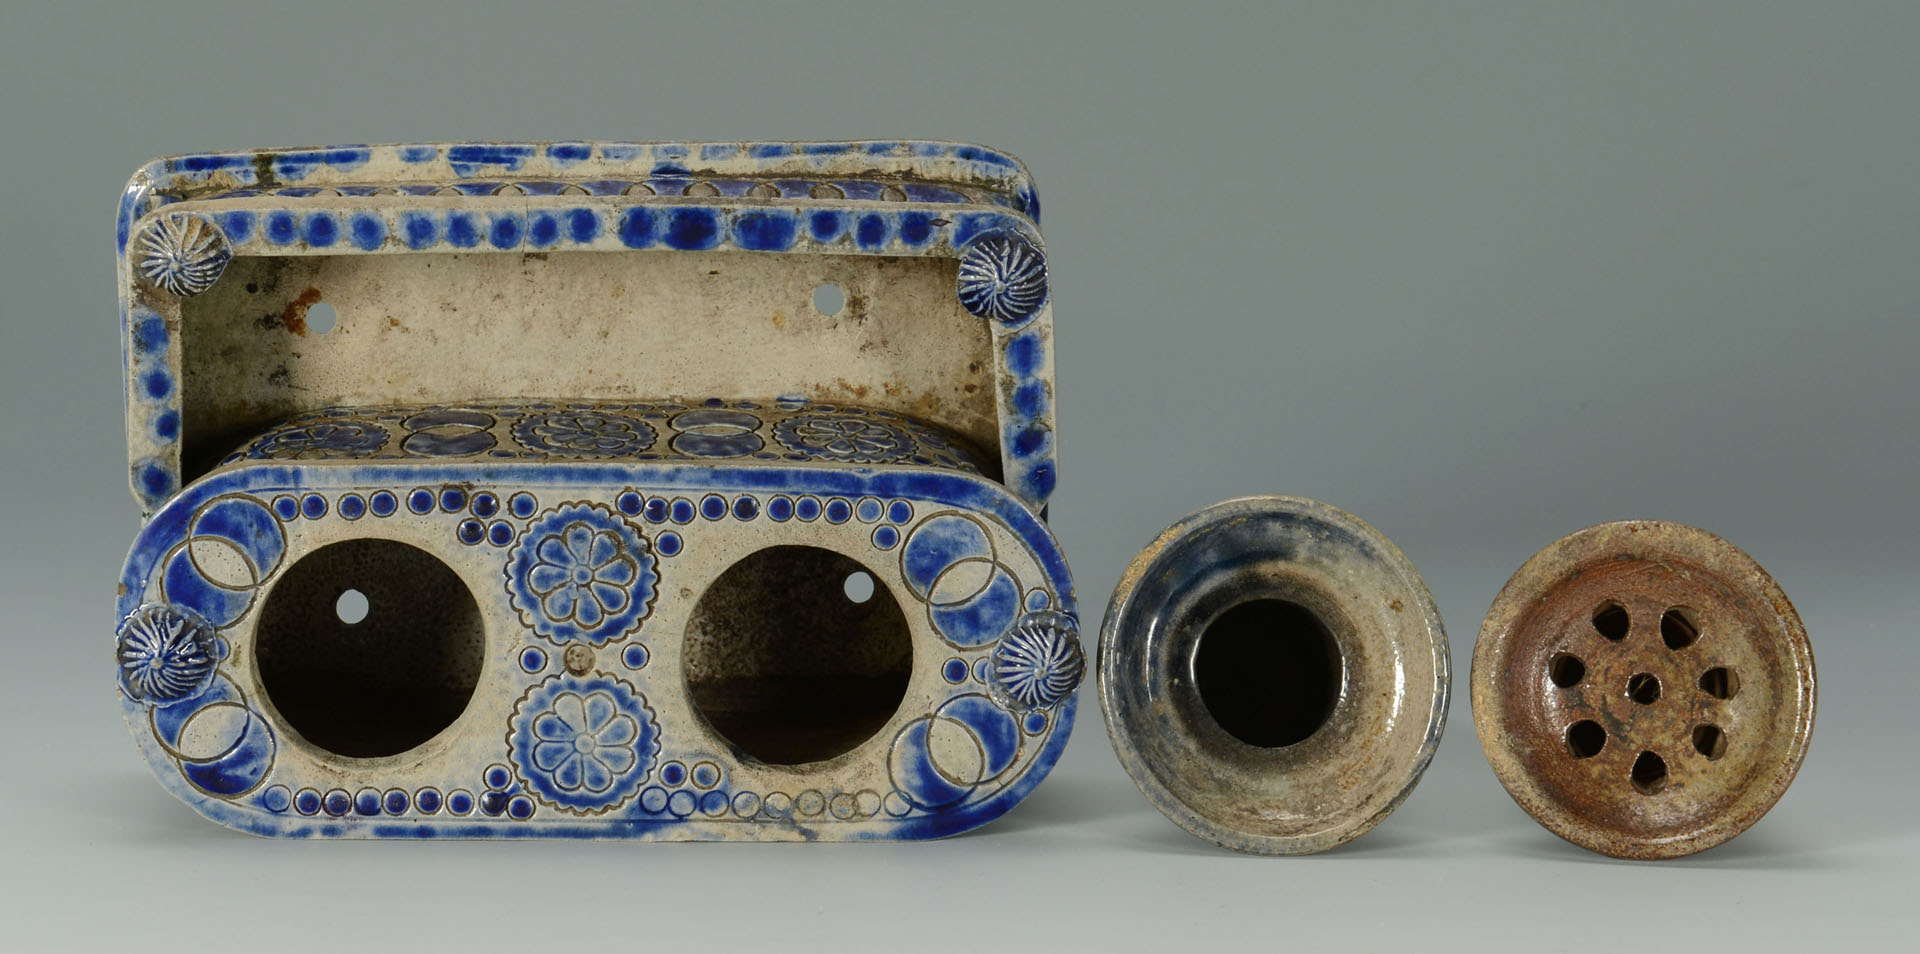 Cobalt Decorated Inkwell and 2 baskets